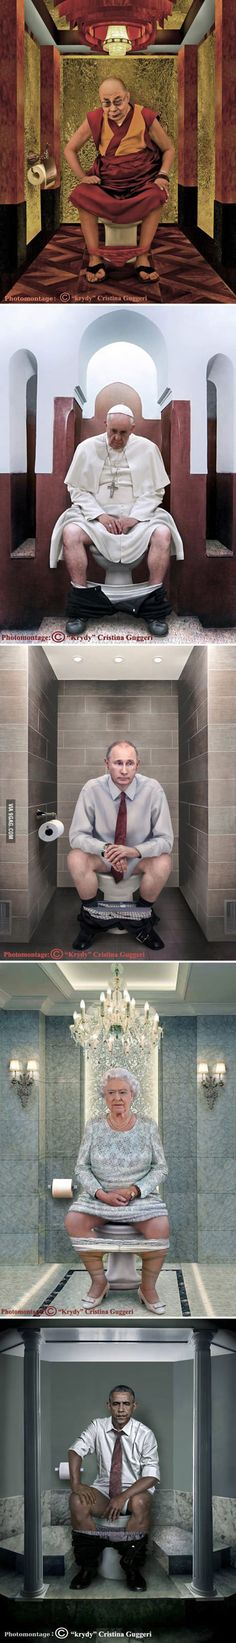 Cristina Guggeri's paintings of World Leaders on the toilet.